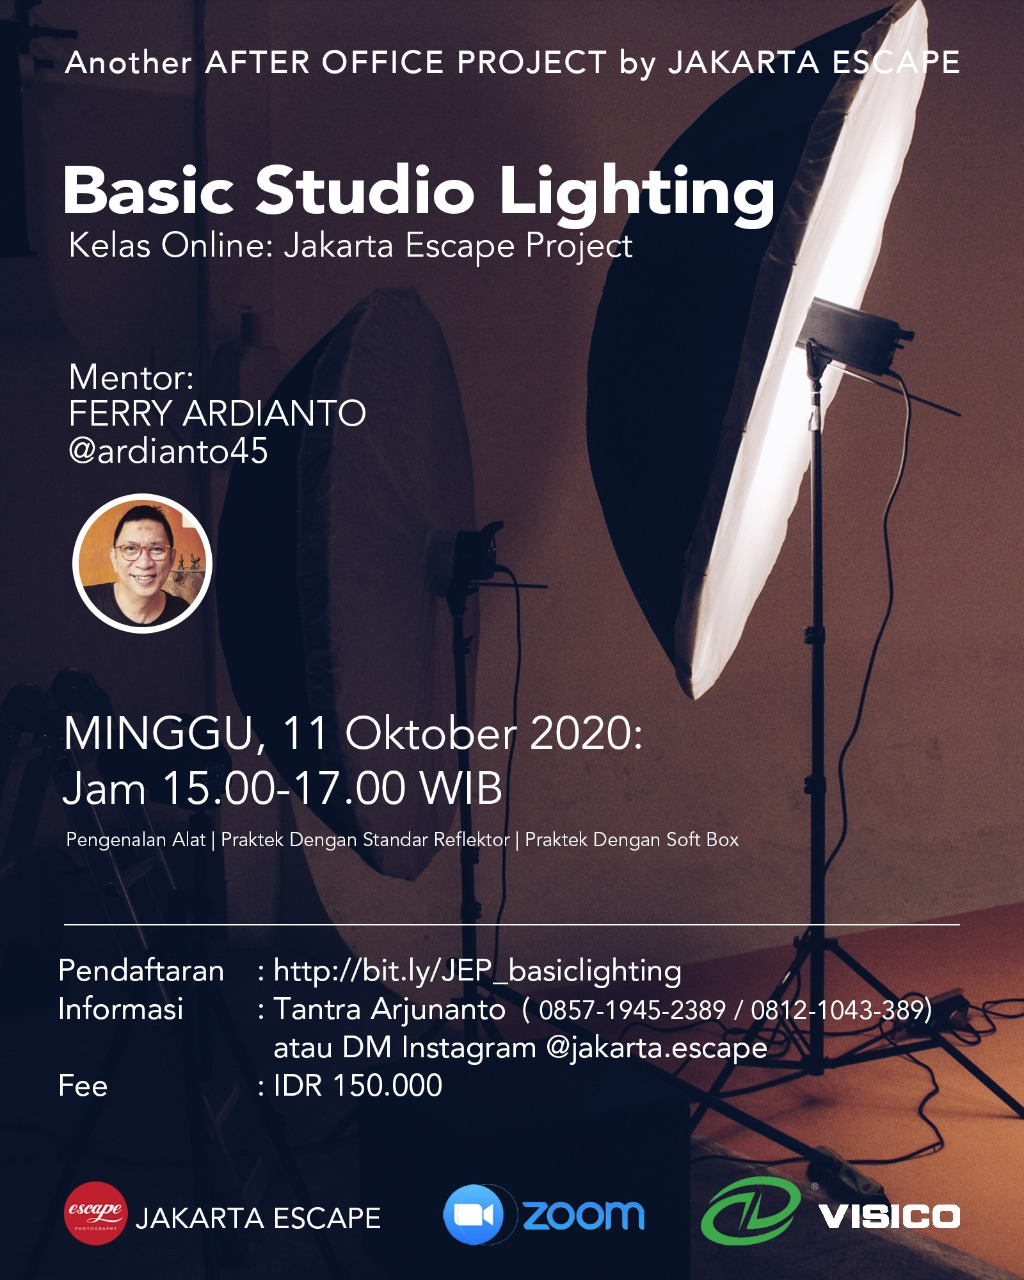 Basic Studio Lighting